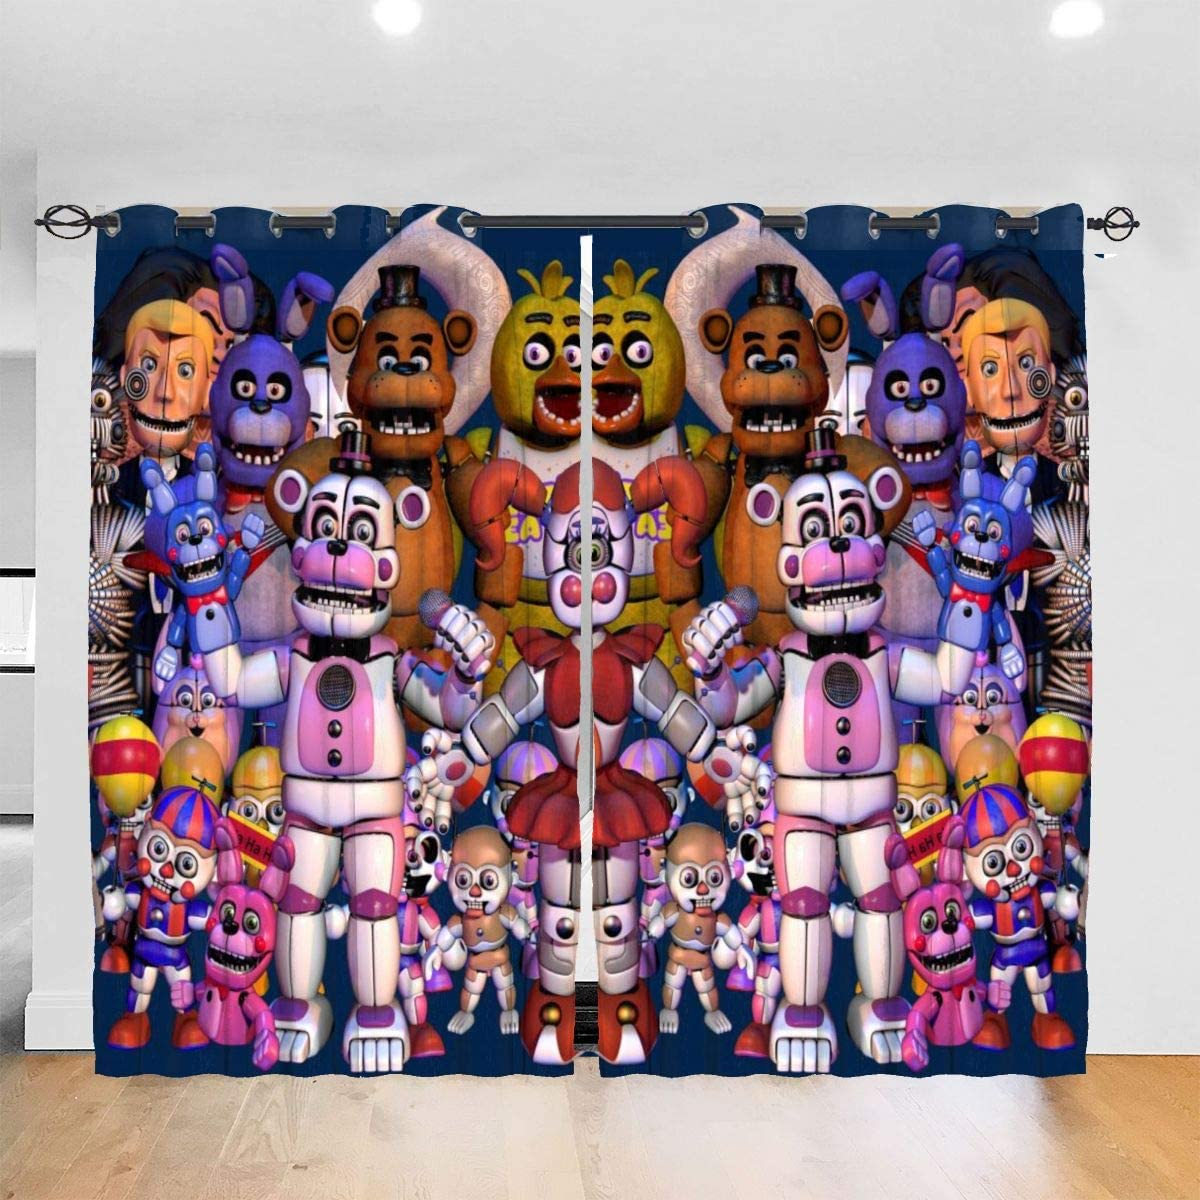 KRISMARIO Family Five Nights at Freddy s Blackout Curtains for Bedroom Living Room Windows, Drapes Top Insulation Blackout Curtain Symmetrical 2 Panels, 52W X 72L Inches